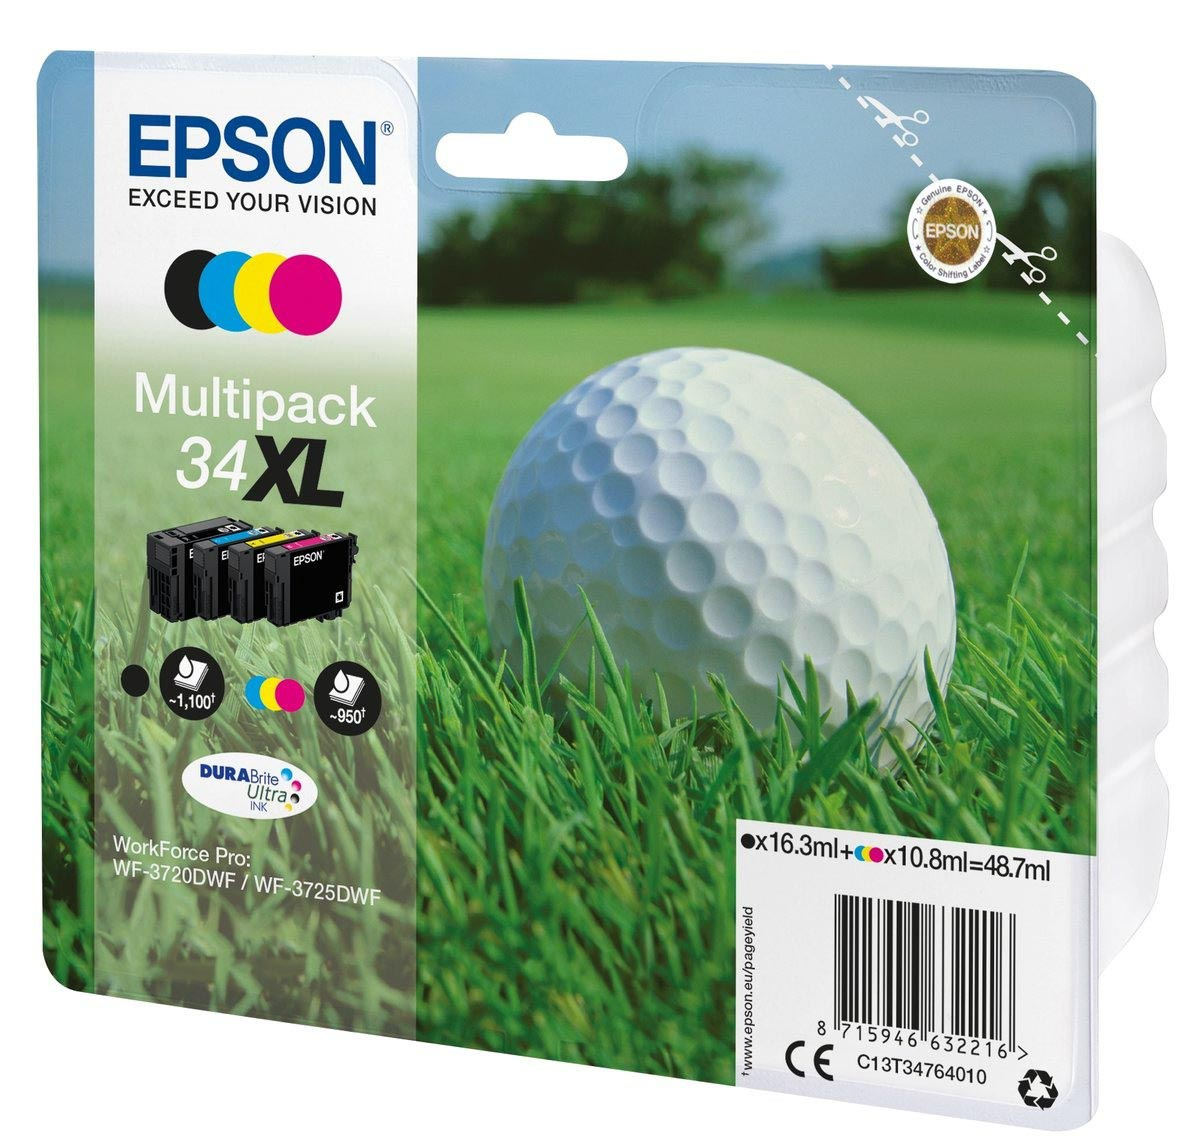 Multipack de tinta original Epson 34XL Bola de Golf 4 colores Alta Capacidad